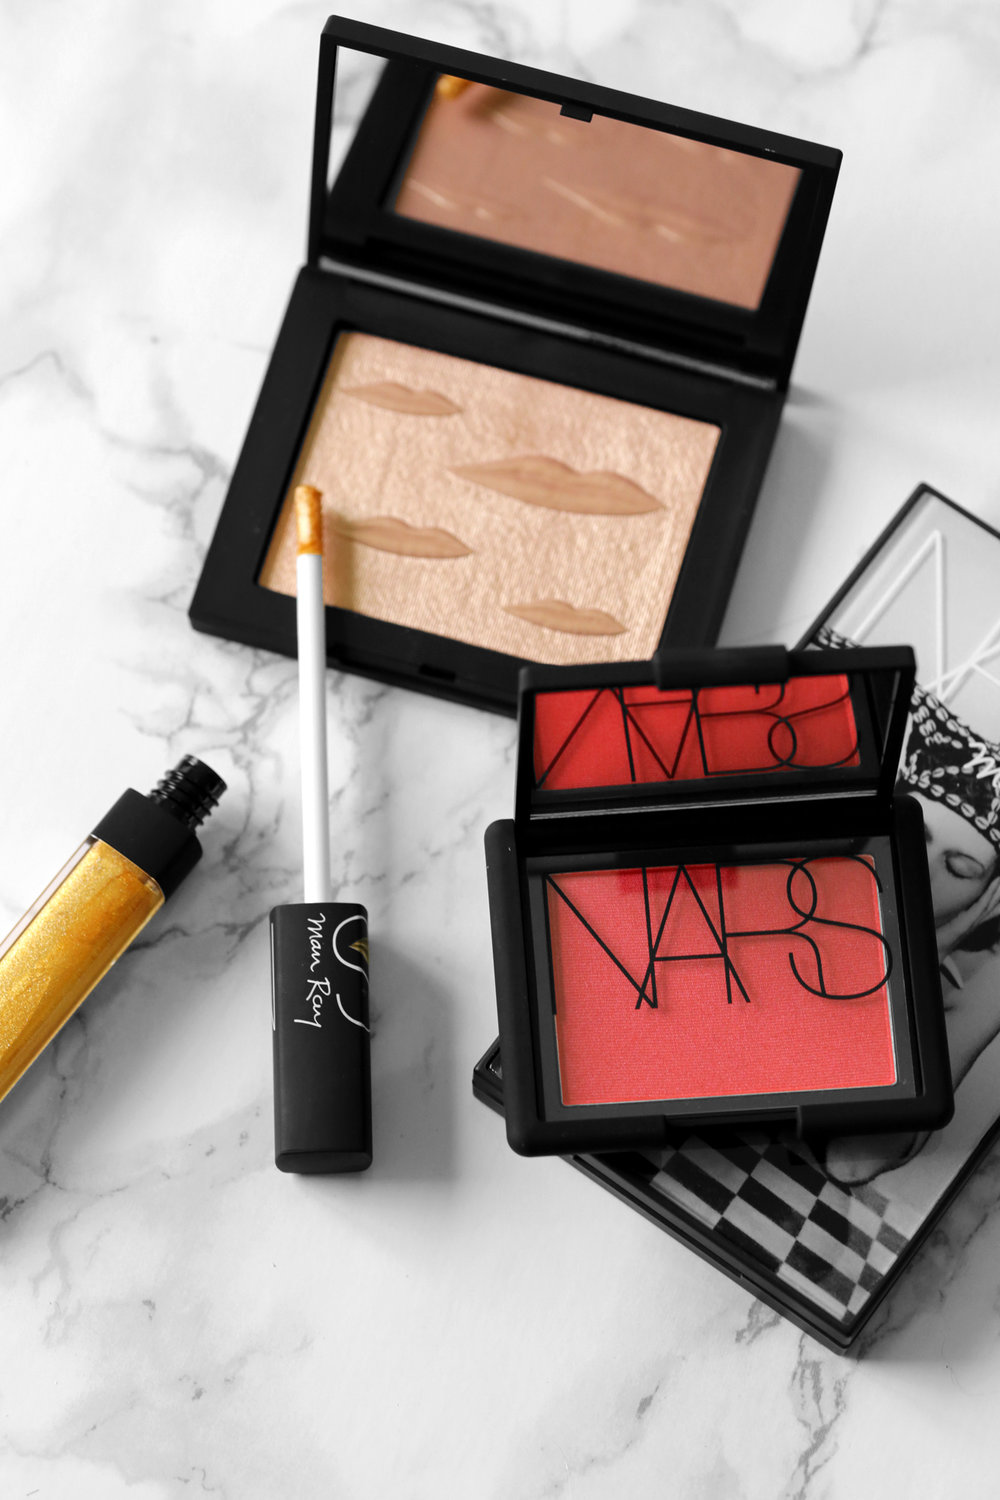 Entire Nars Man Ray Collection 2017_3236.jpg